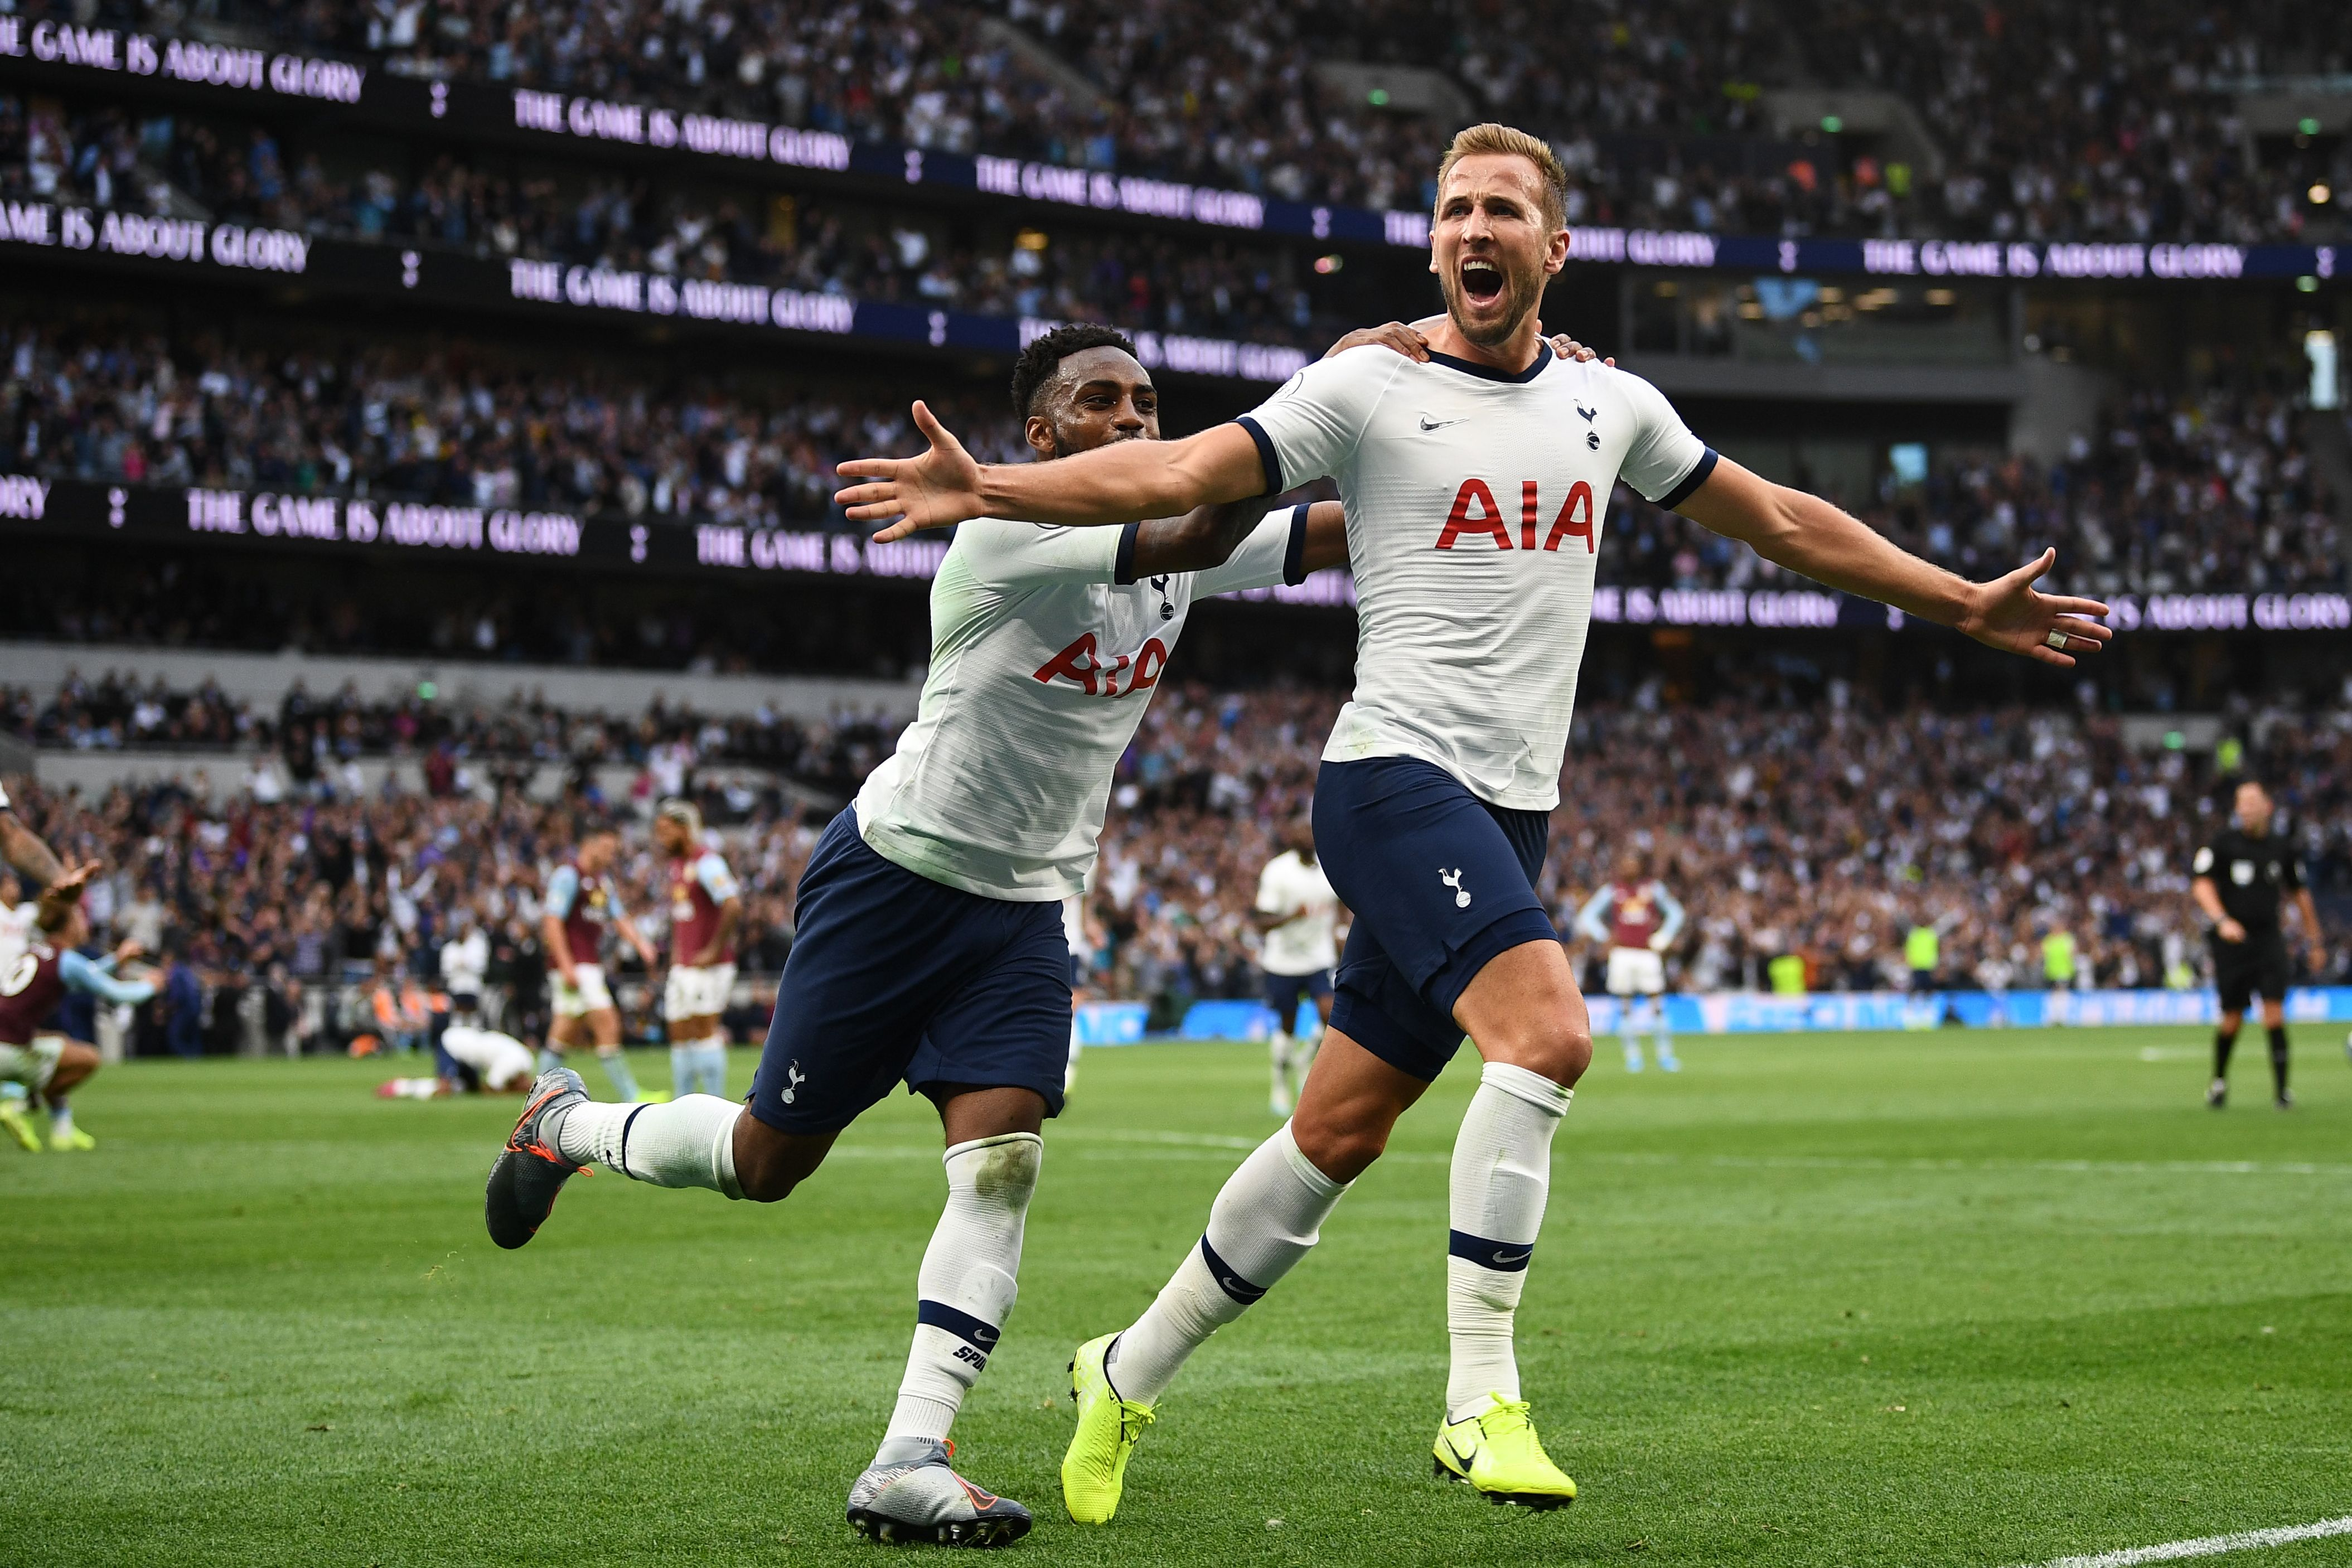 Amazon builds 'All Or Nothing' franchise with Tottenham Hotspur – TBI Vision